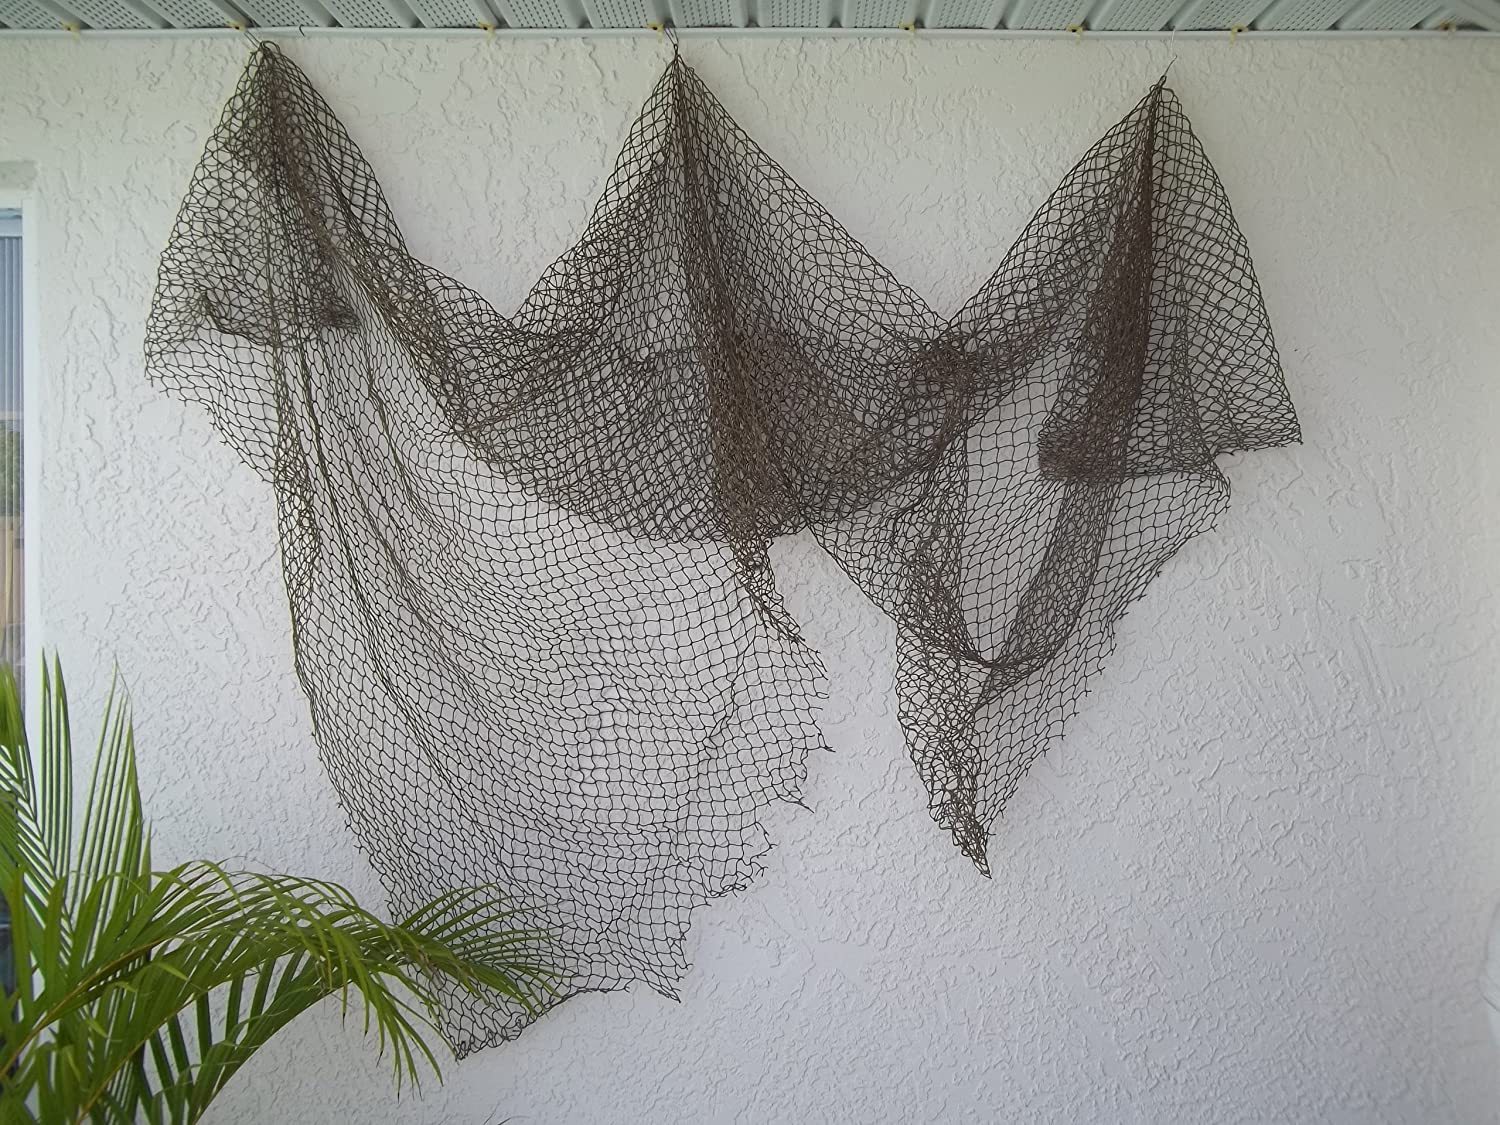 HS Greenish Brown Decorative Fish Netting